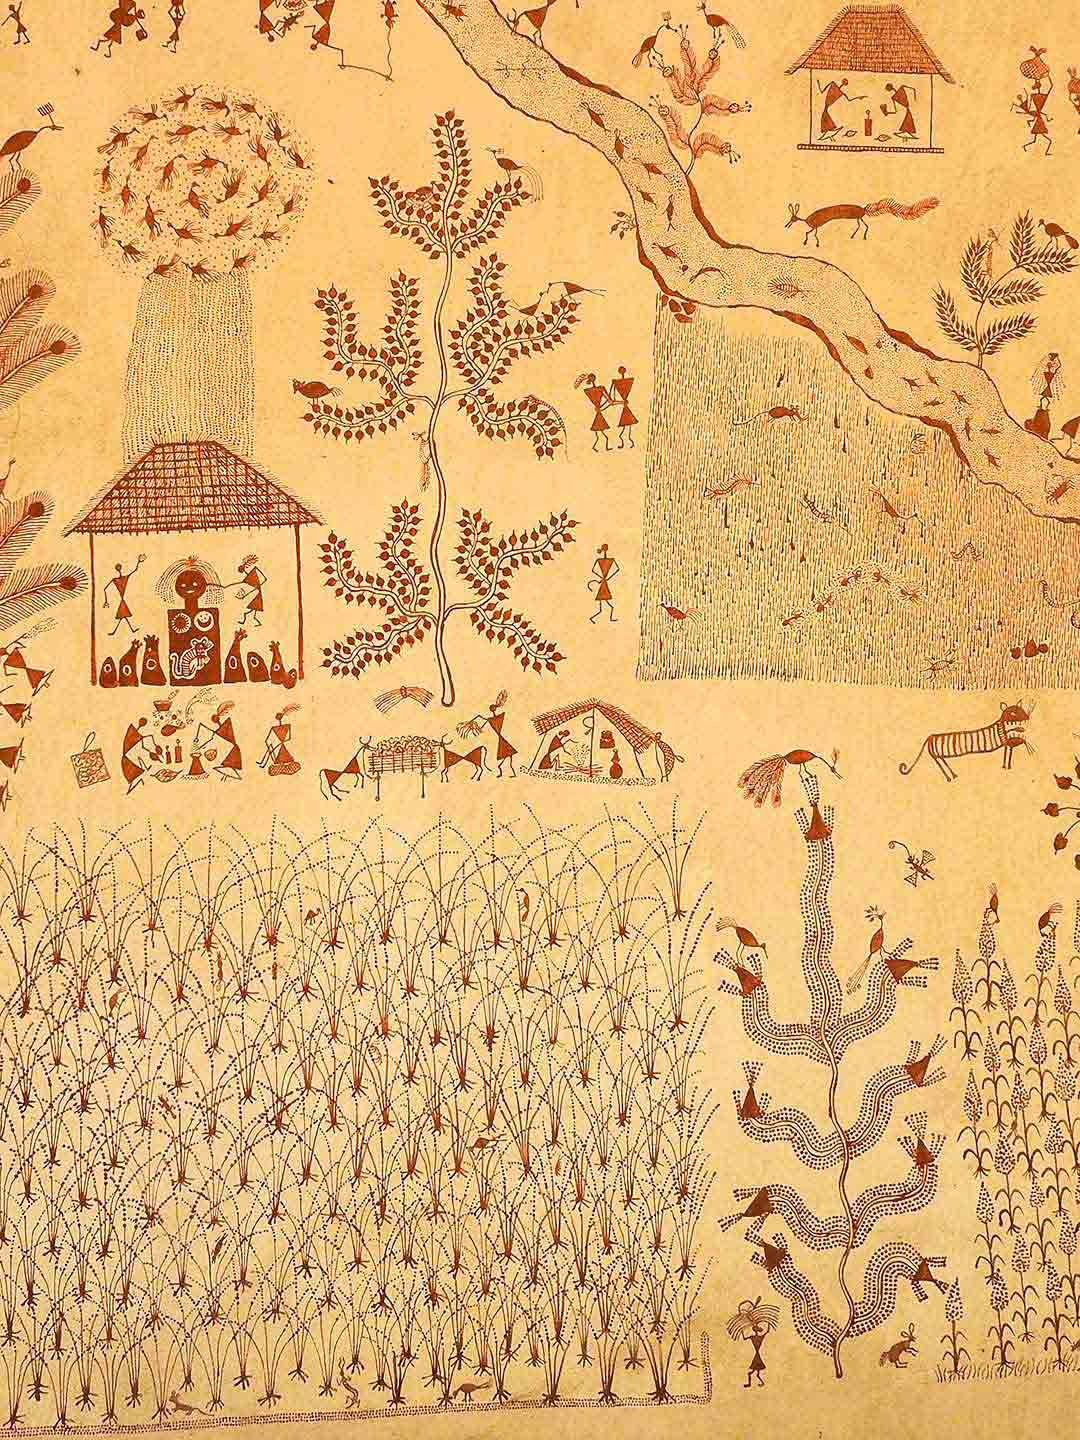 Warli Painting at the Crafts Museum, Delhi